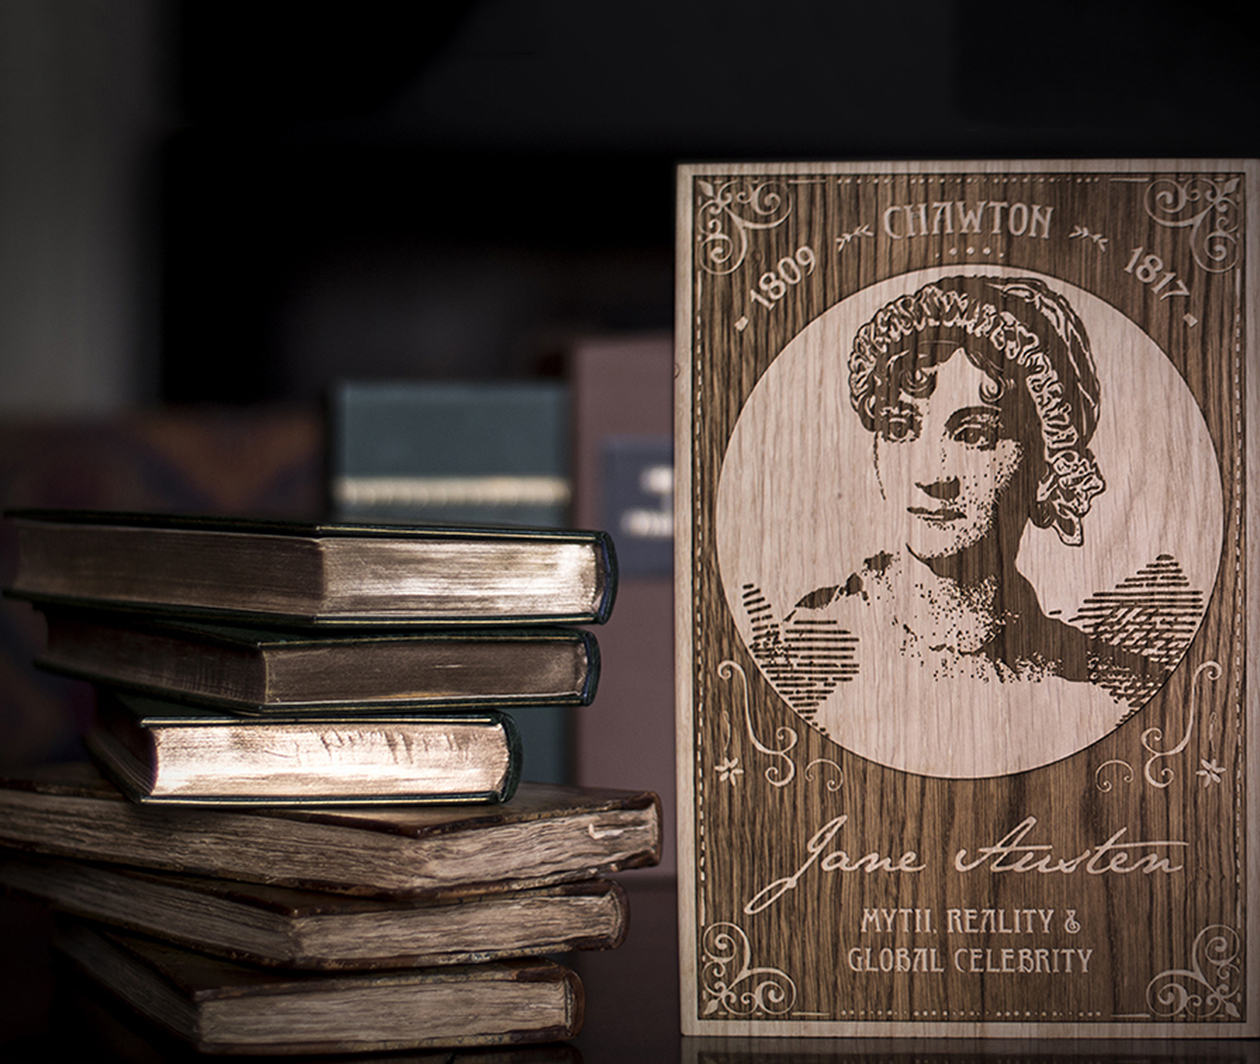 Jane Austen: Myth, Reality and Global Celebrity